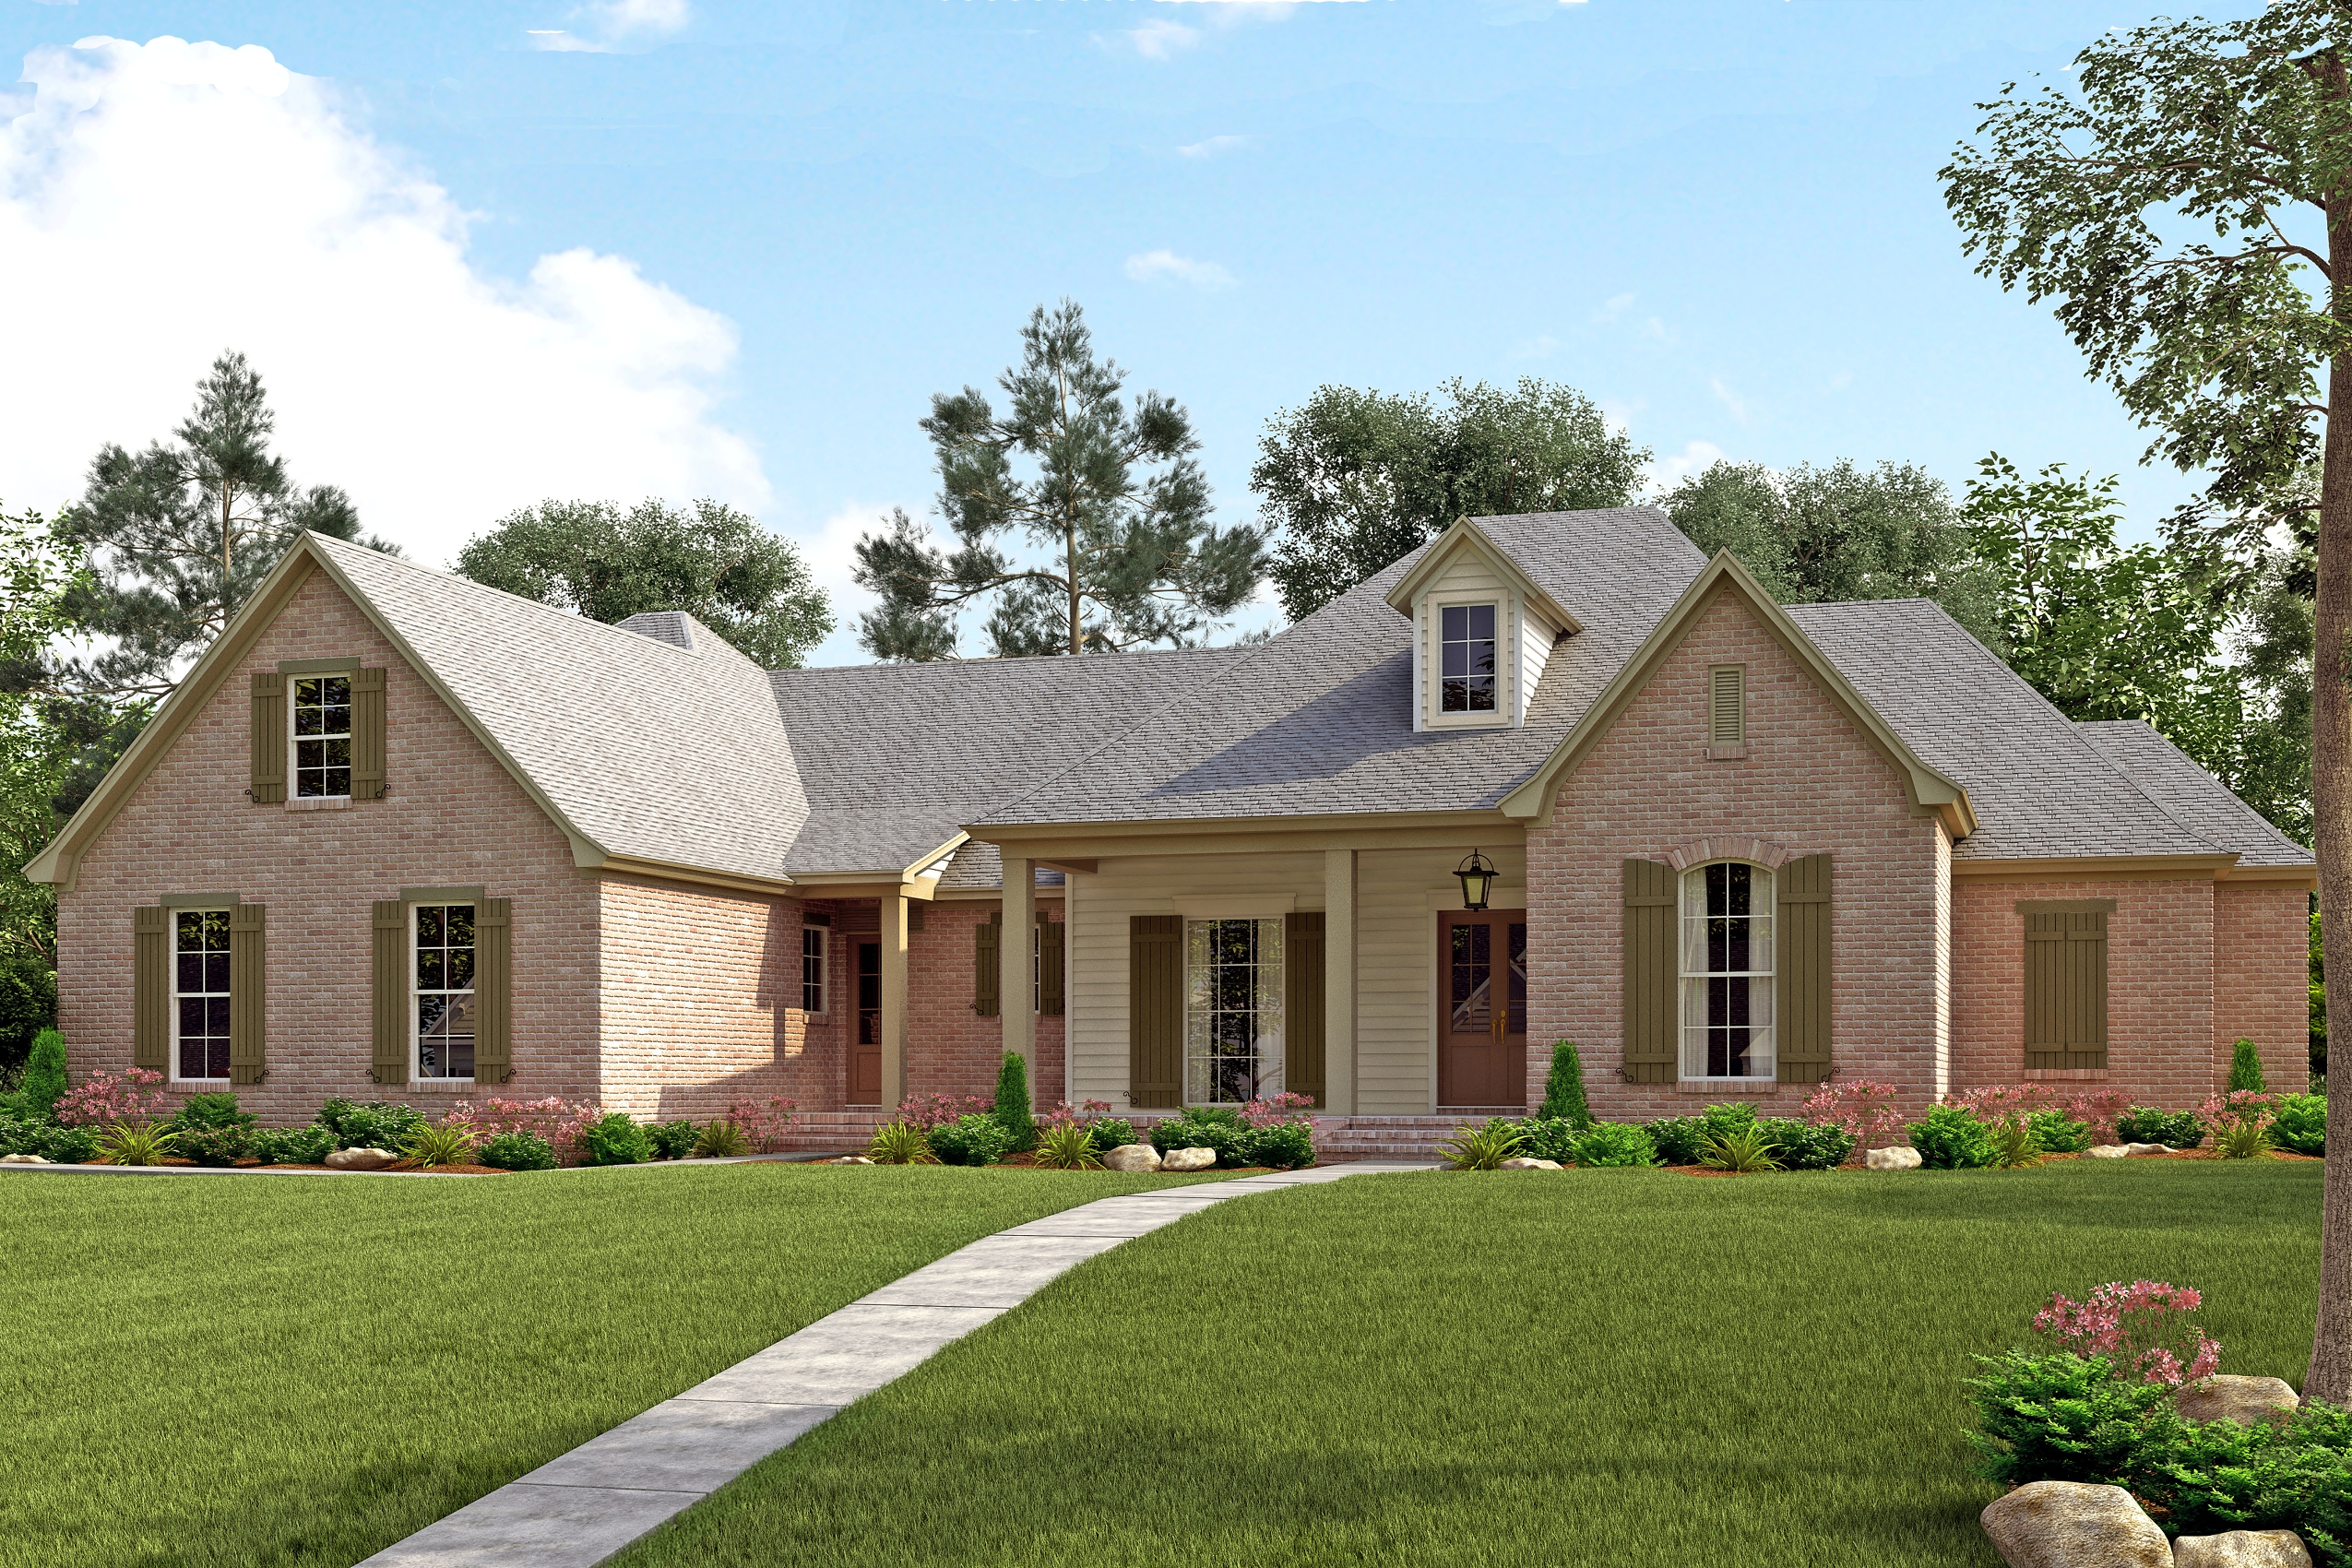 French house plan 142 1139 4 bedrm 3195 sq ft home for French home plans